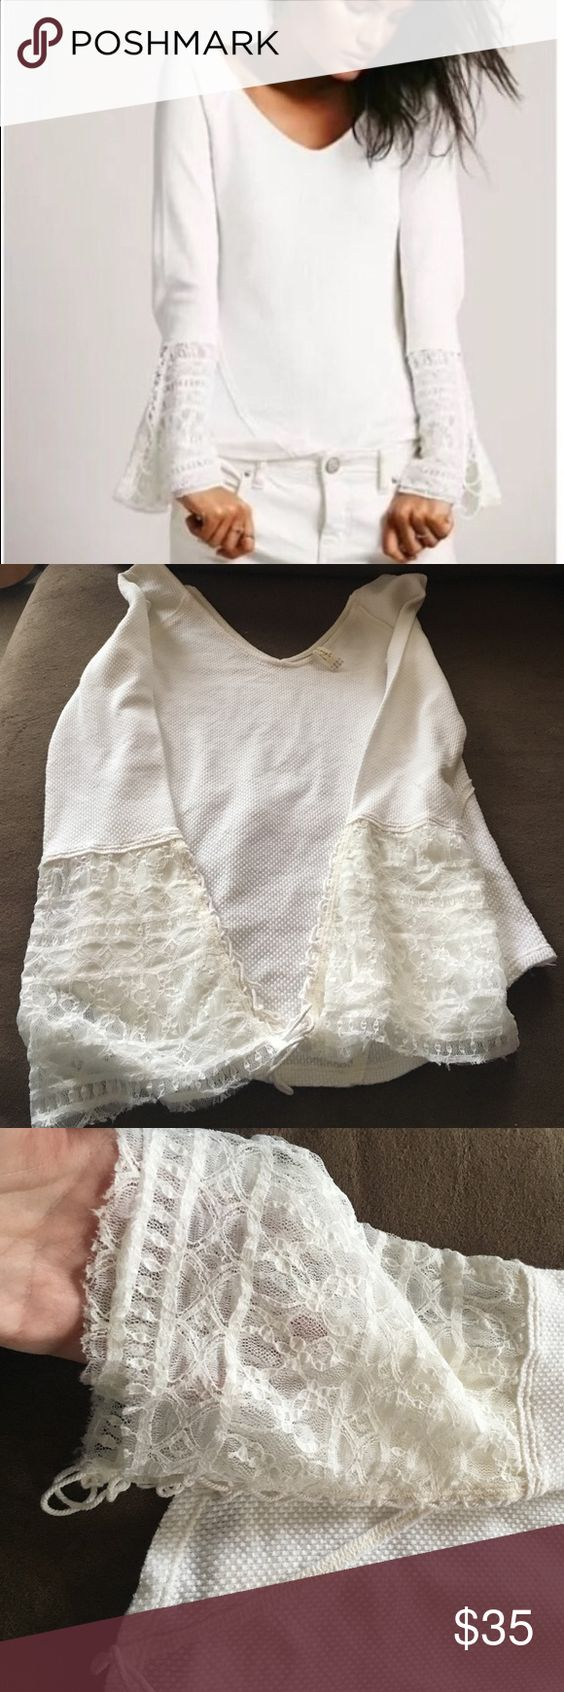 💕Free People top! ❤️Free People Top! Perfect condition! No stains, holes, or odor! I bought from another posher. I never wore it because it's more of an ivory color and I was looking for bright white! Very cute top though! Free People Tops